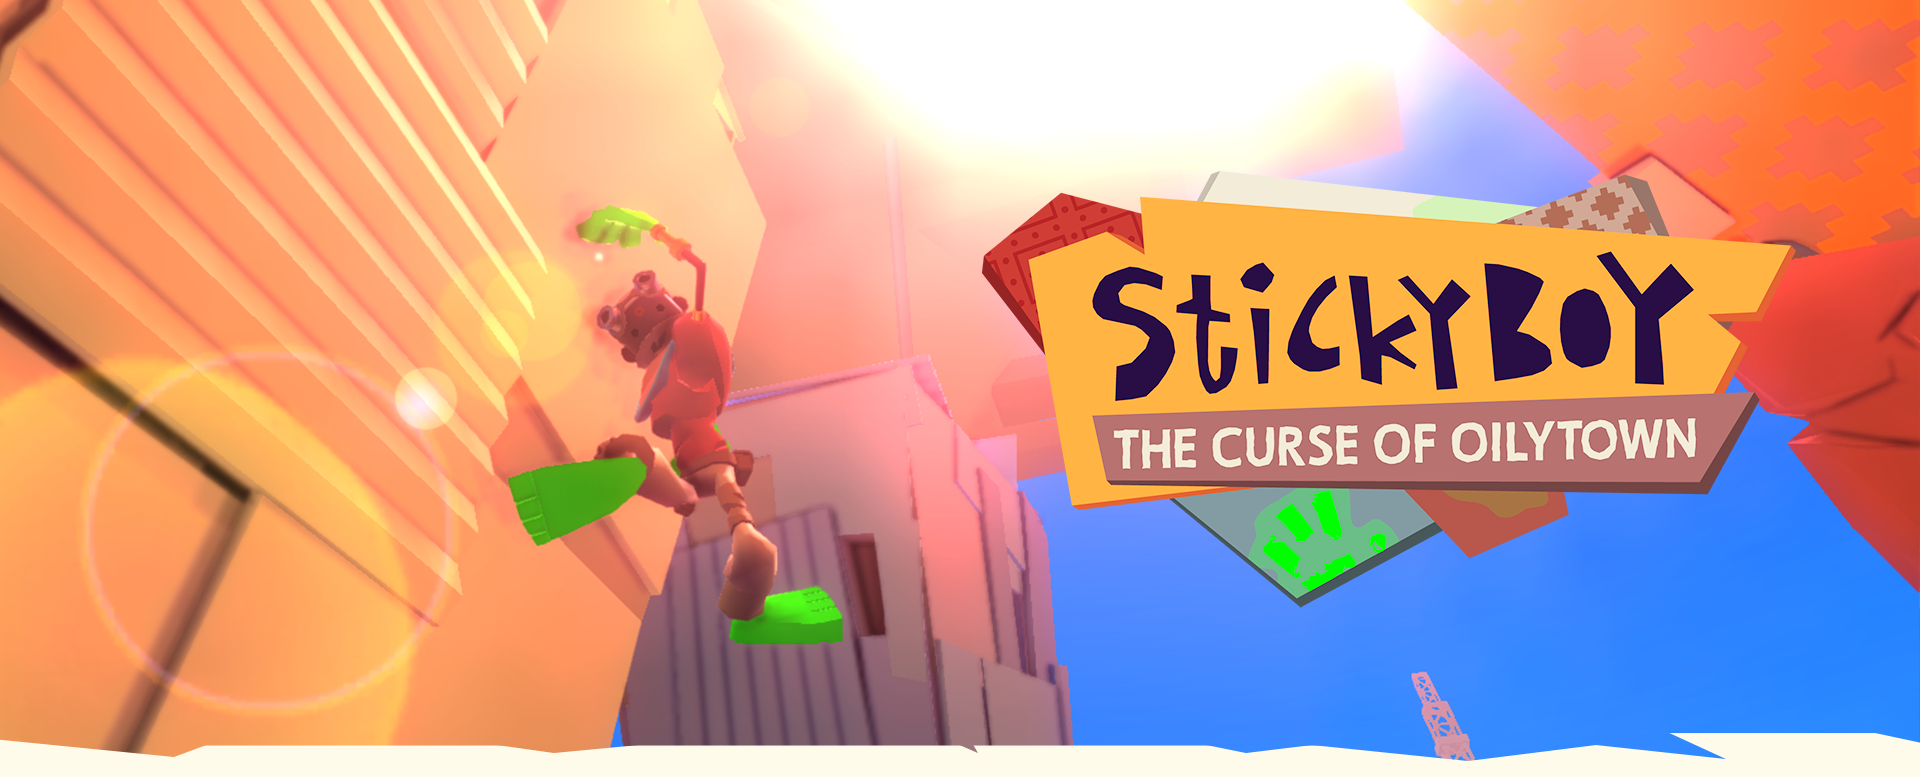 Stickyboy : the Curse of Oilytown